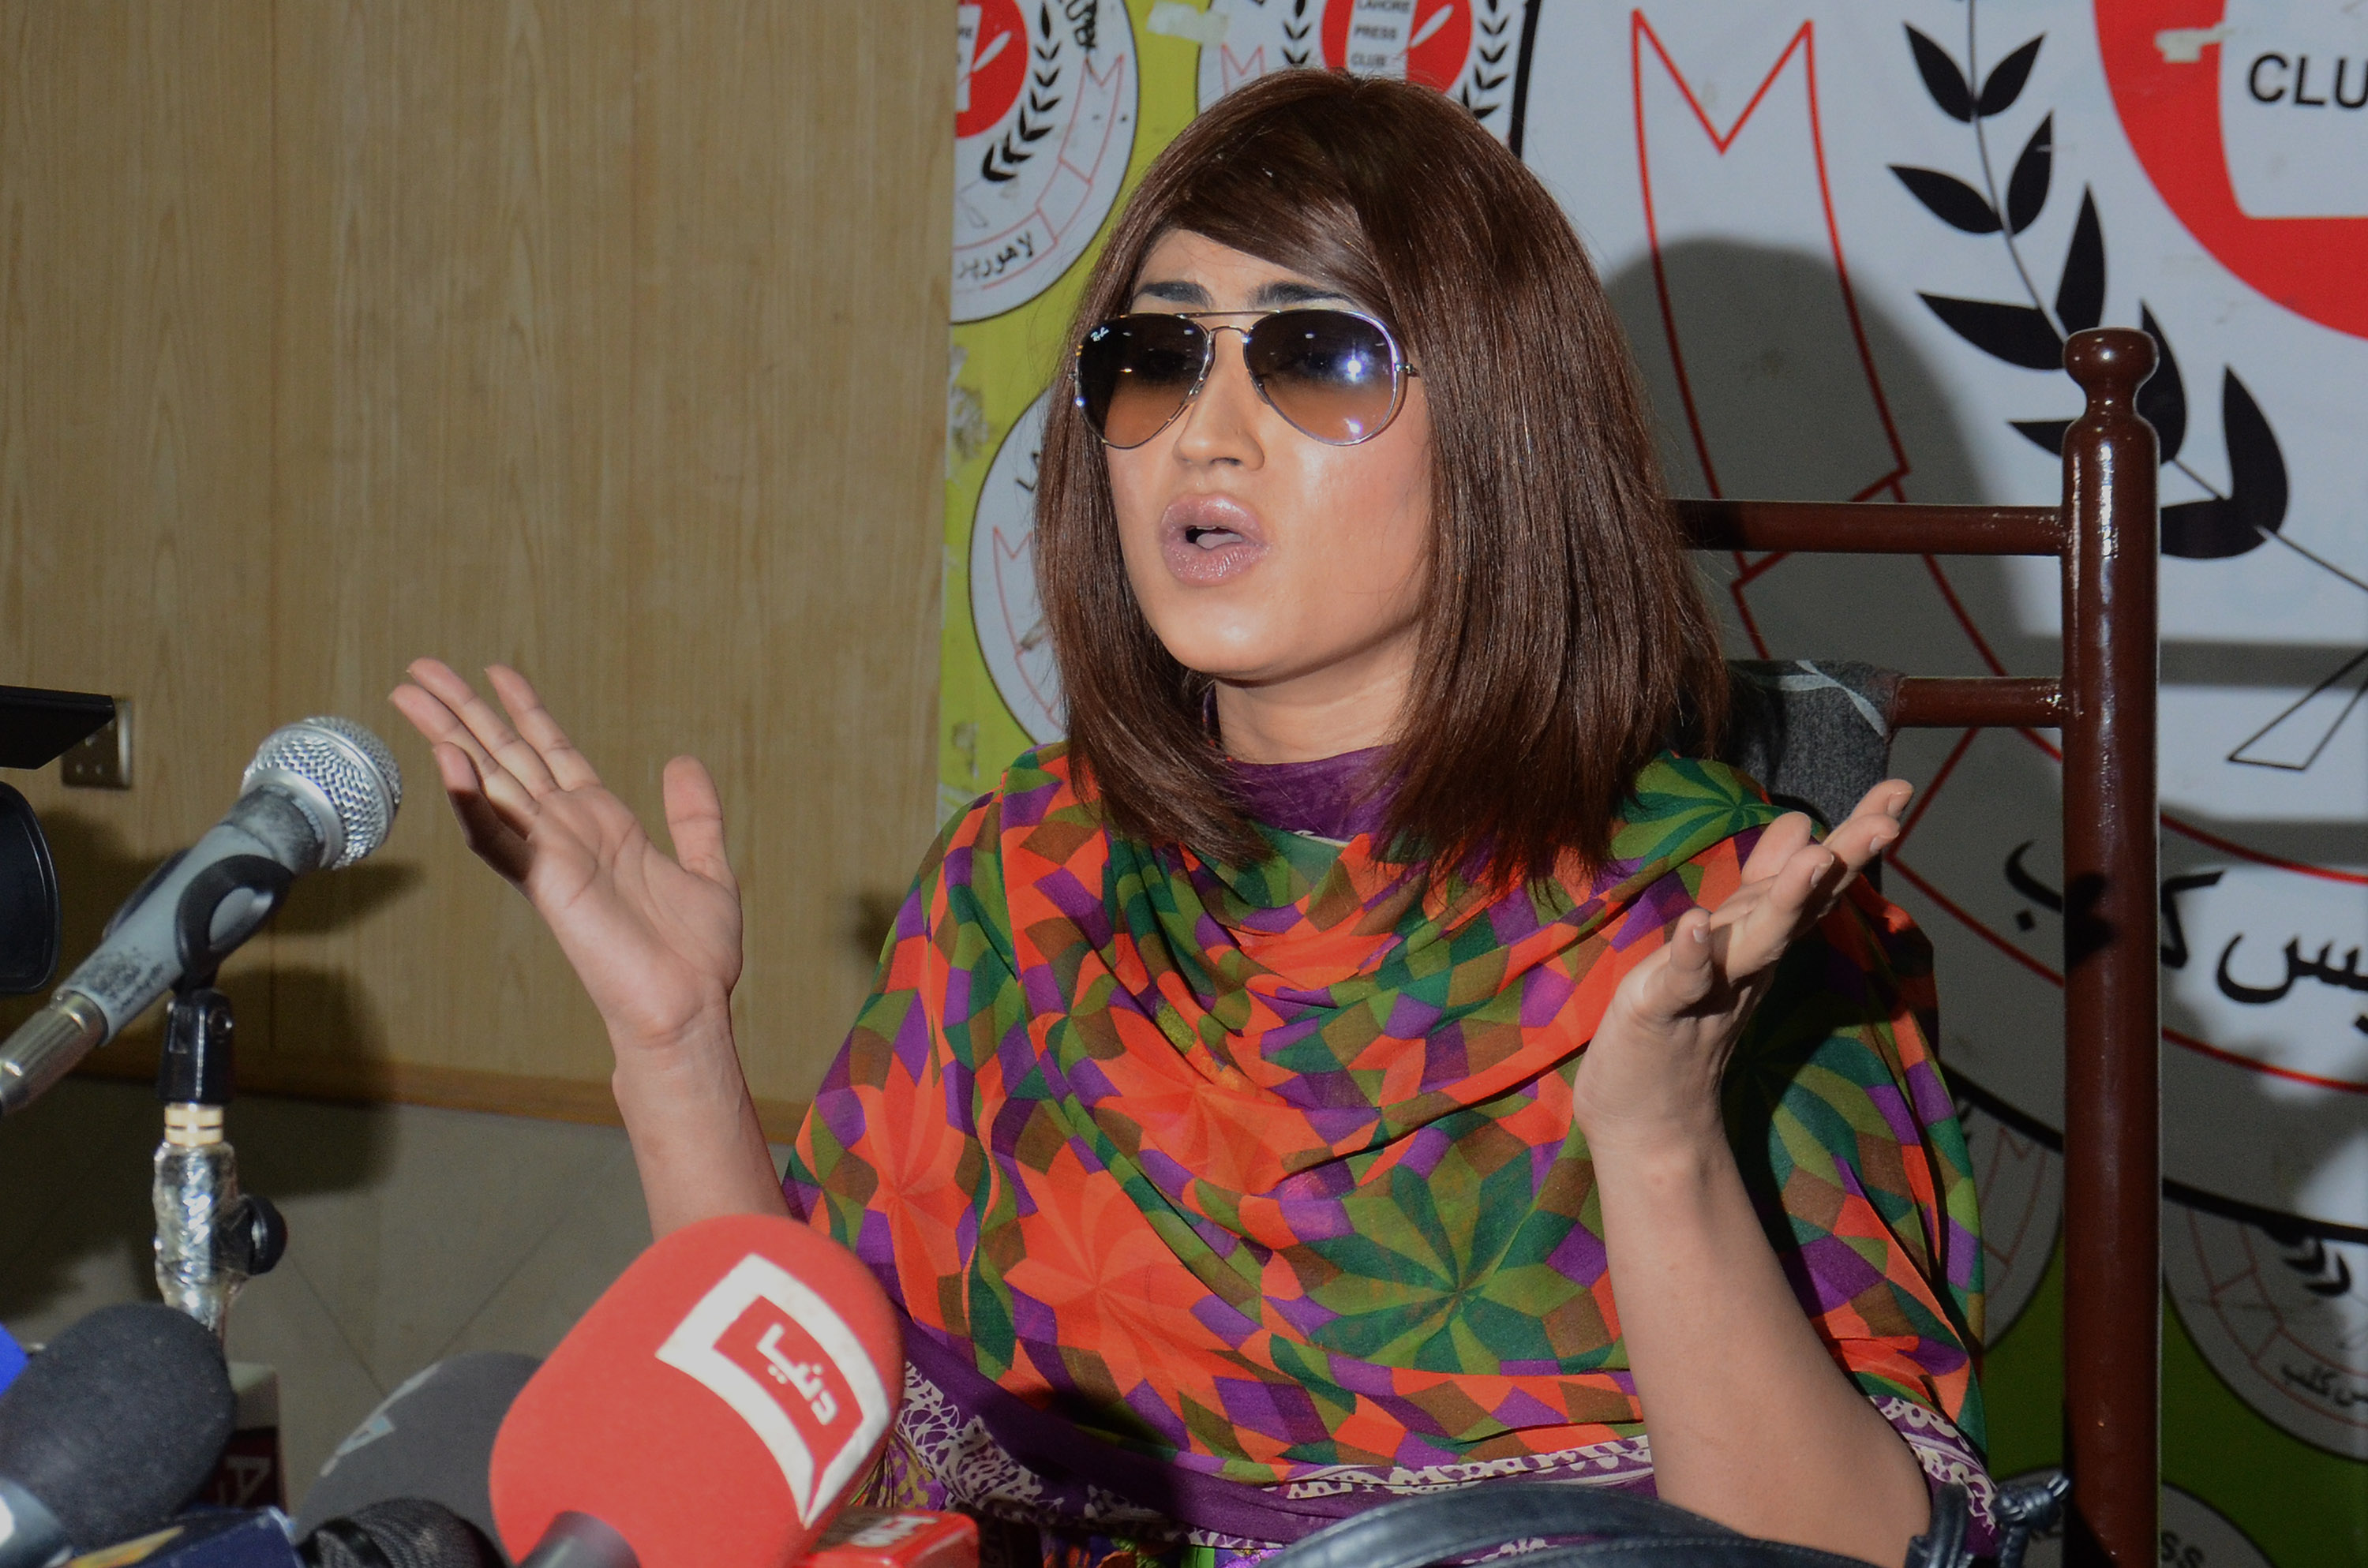 Pakistani actress and model Qandeel Baloch addresses media during a press conference on June 28, 2016.